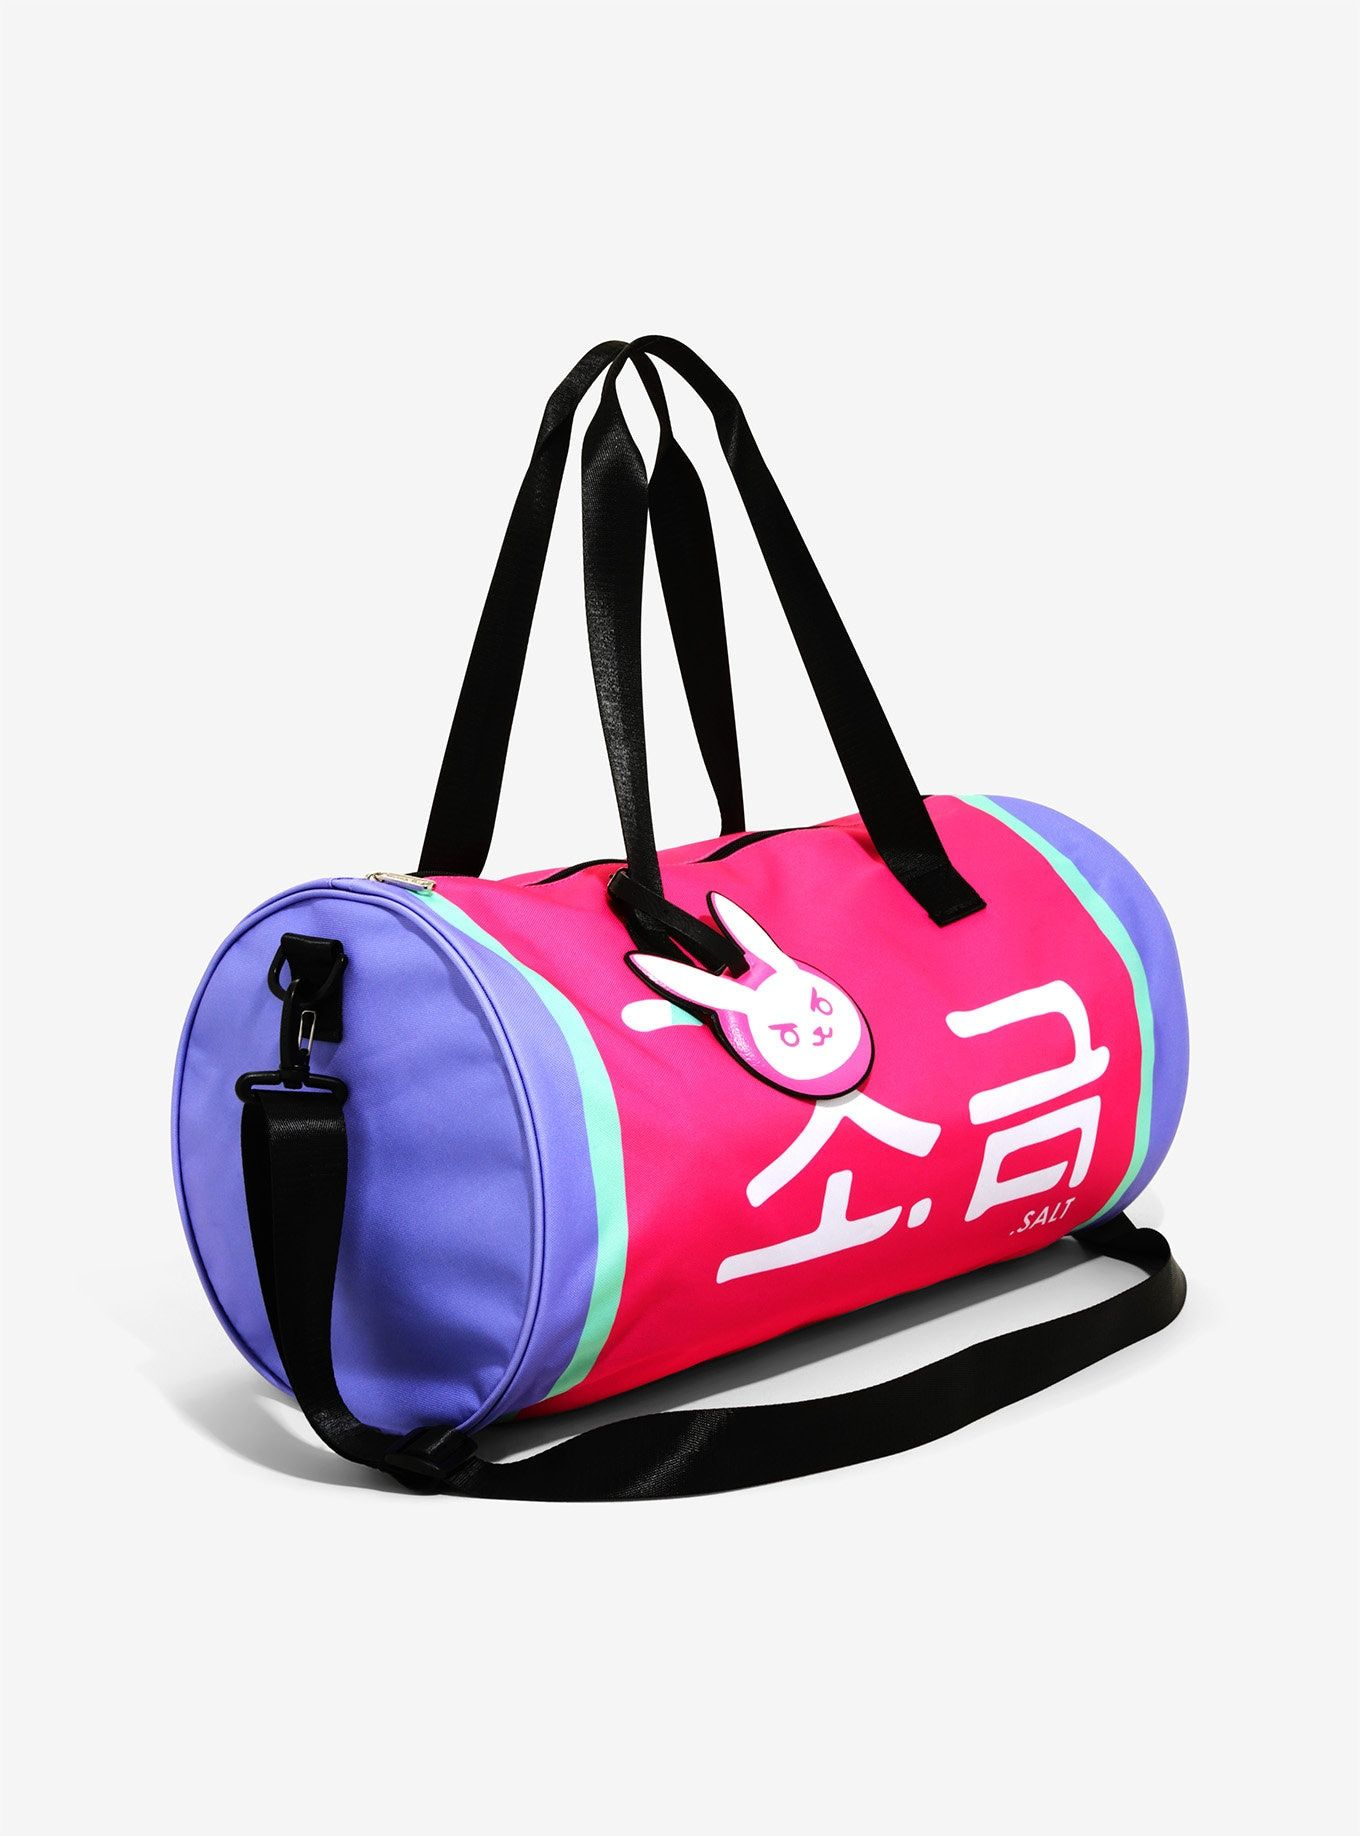 112fae2a063 Loungefly Overwatch D.Va Duffel Bag - BoxLunch Exclusive | Gaming ...